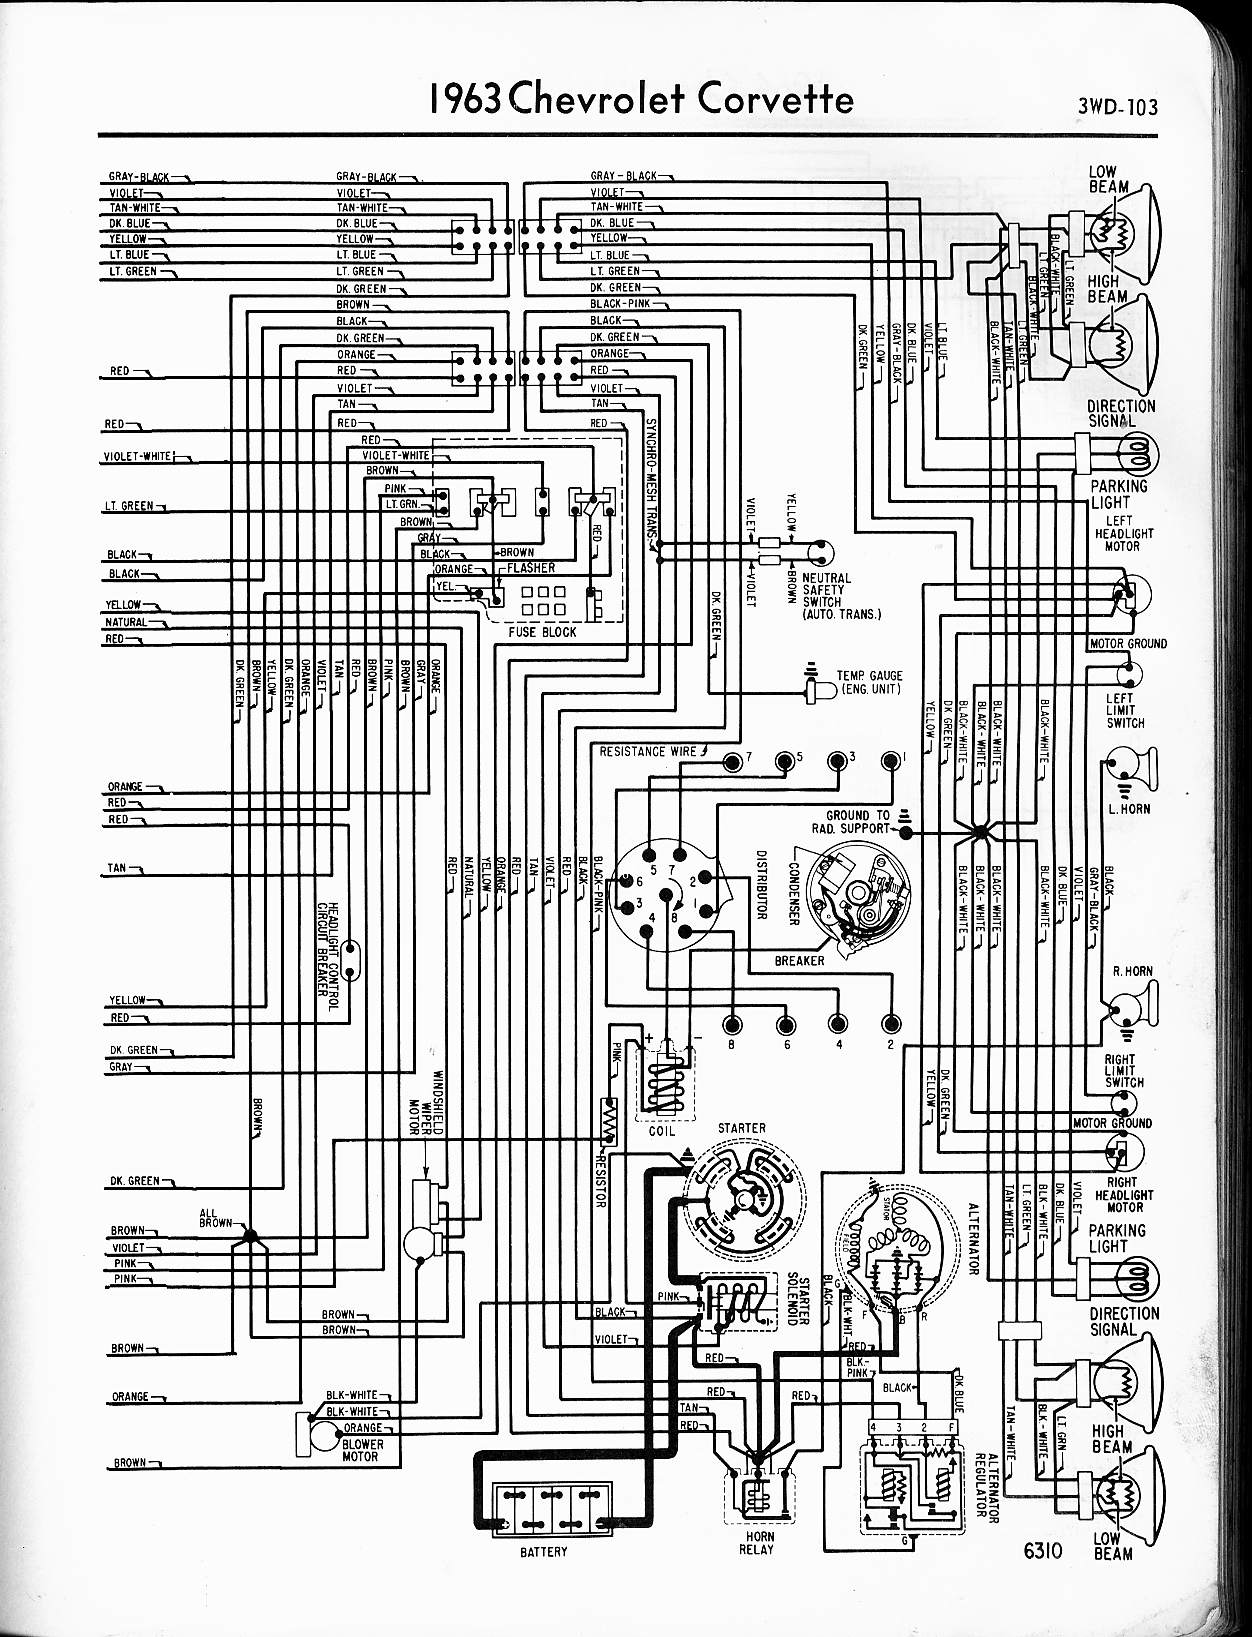 MWireChev63_3WD 103 57 65 chevy wiring diagrams 1970 Corvette Wiring Diagram at eliteediting.co